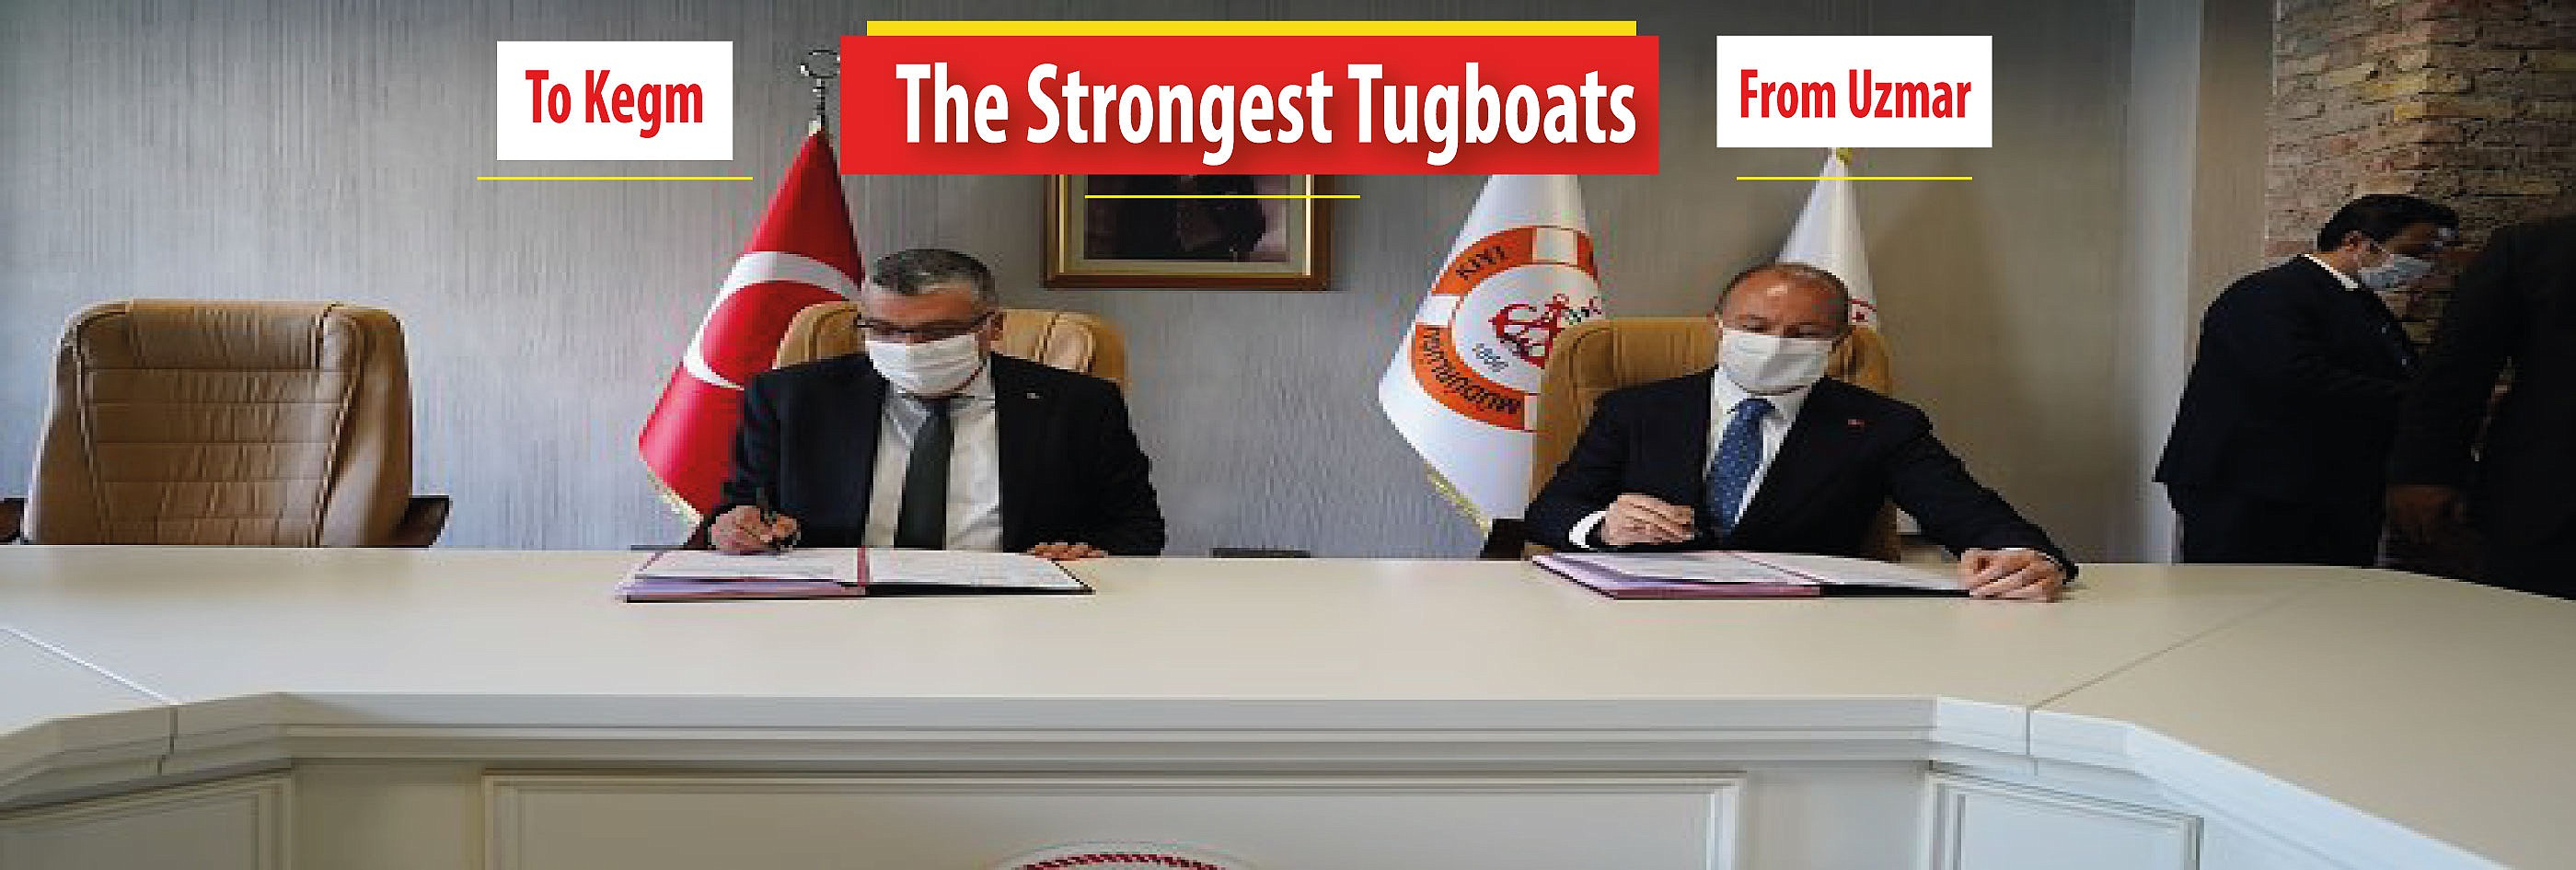 UZMAR to build two tugboats for Turkish Directorate General Of Coastal Safety!